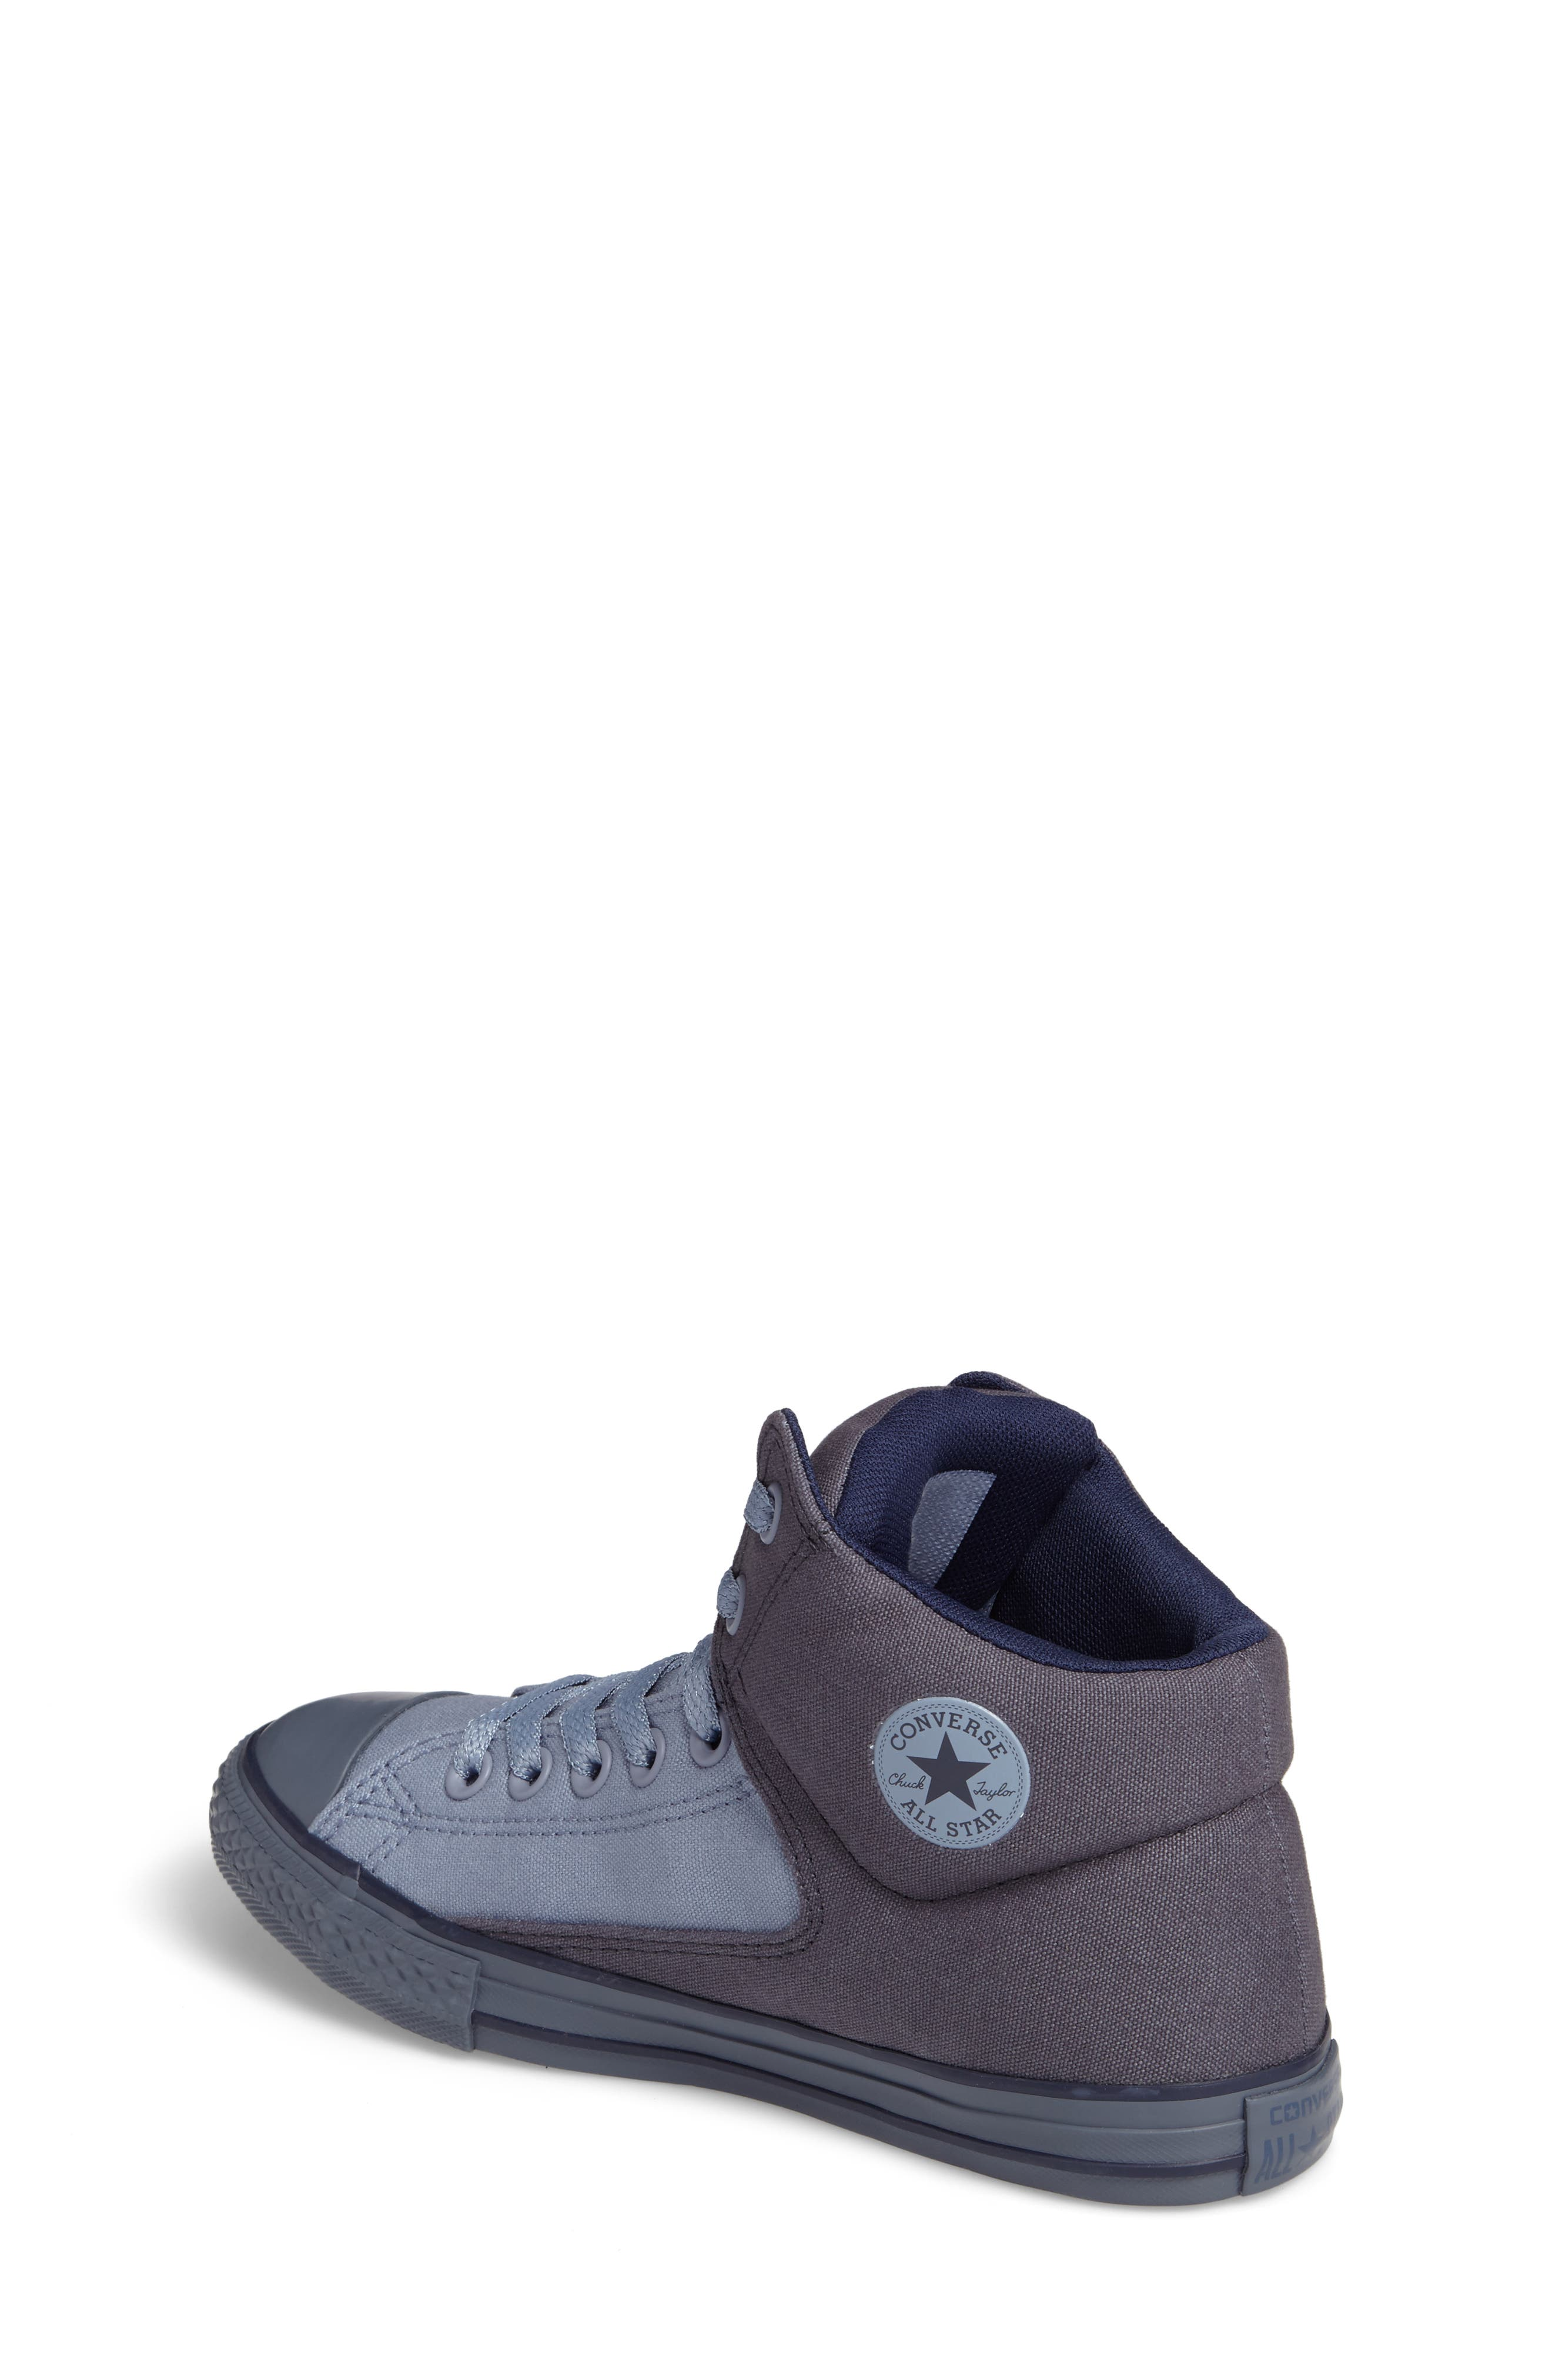 Chuck Taylor<sup>®</sup> All Star<sup>®</sup> High Street High Top Sneaker,                             Alternate thumbnail 2, color,                             Sharkskin Canvas